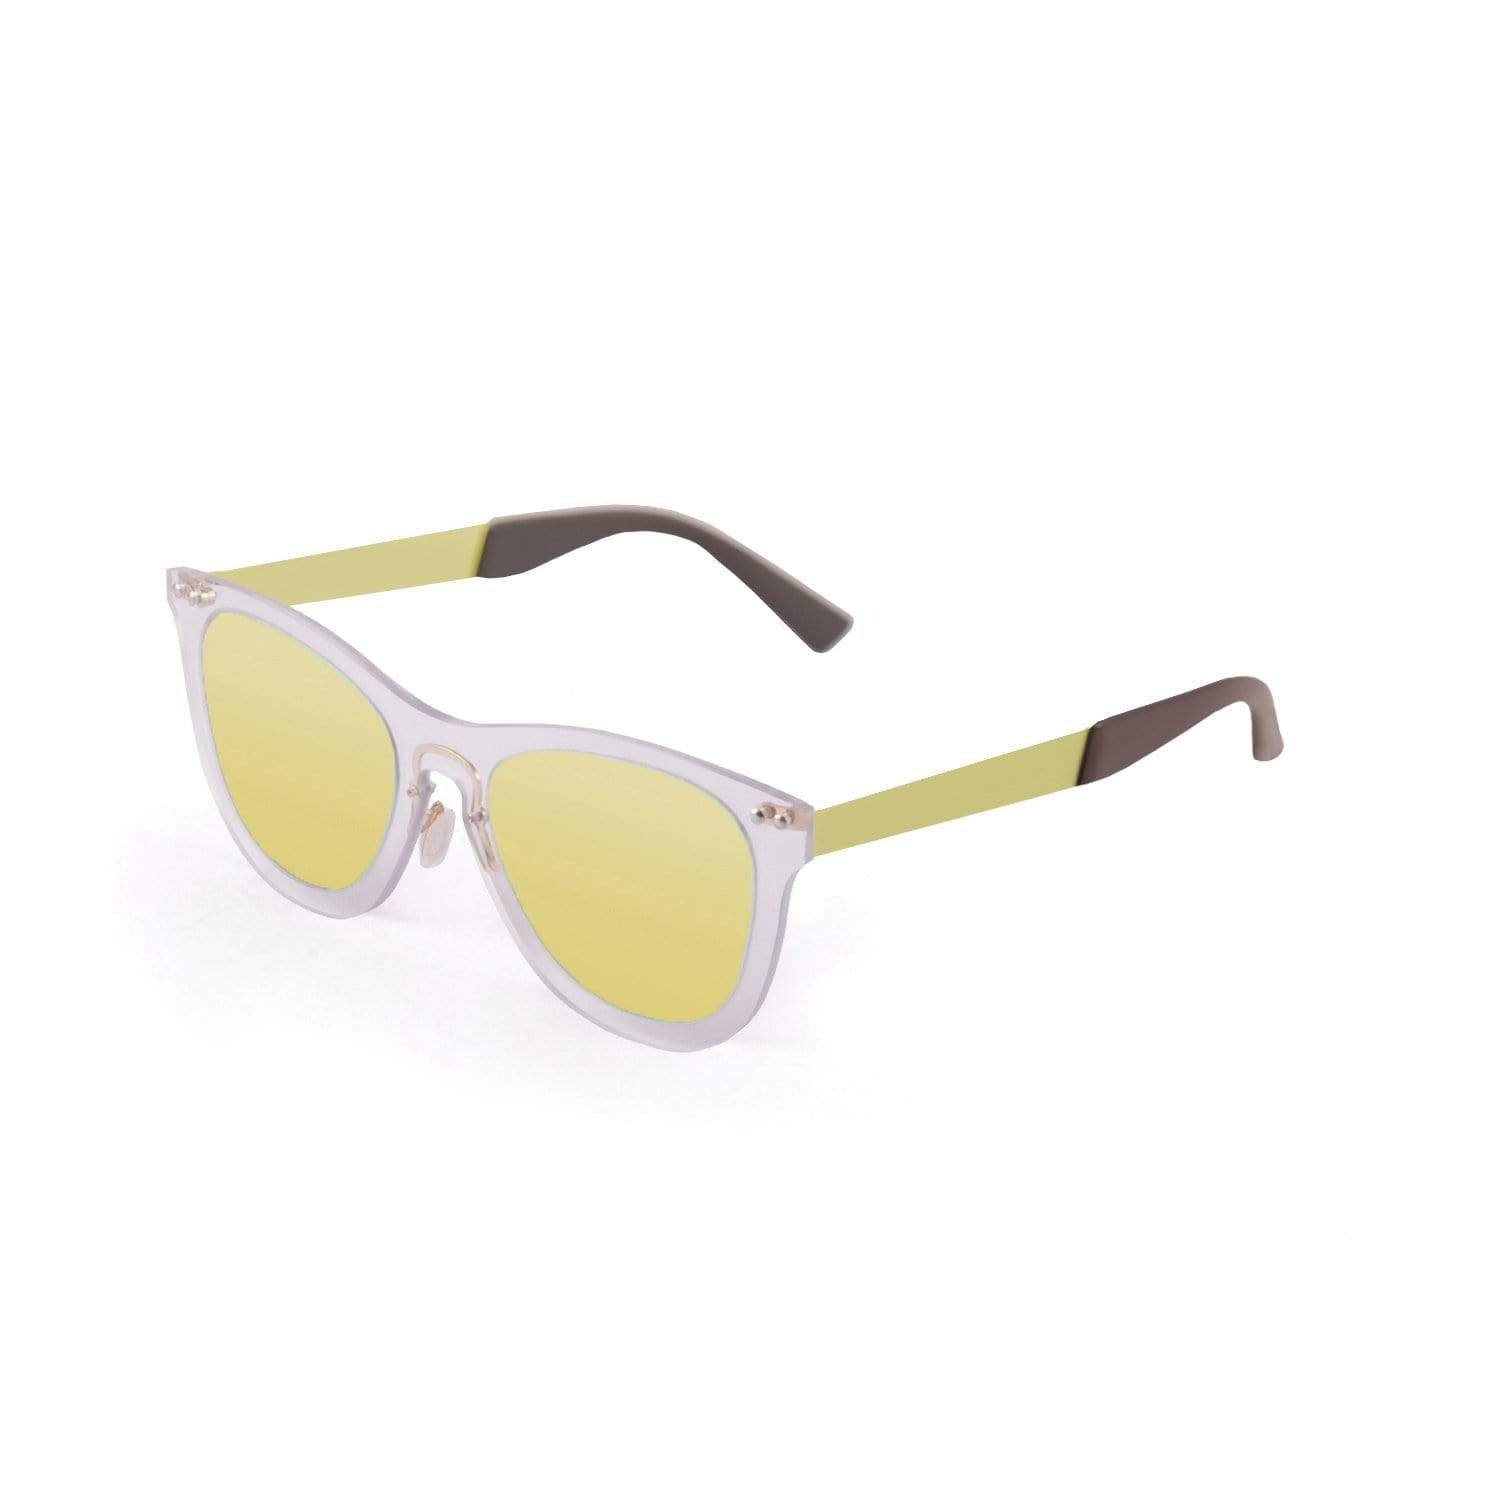 Ocean Sunglasses Accessories Sunglasses yellow-1 / NOSIZE Ocean Sunglasses - FLORENCIA